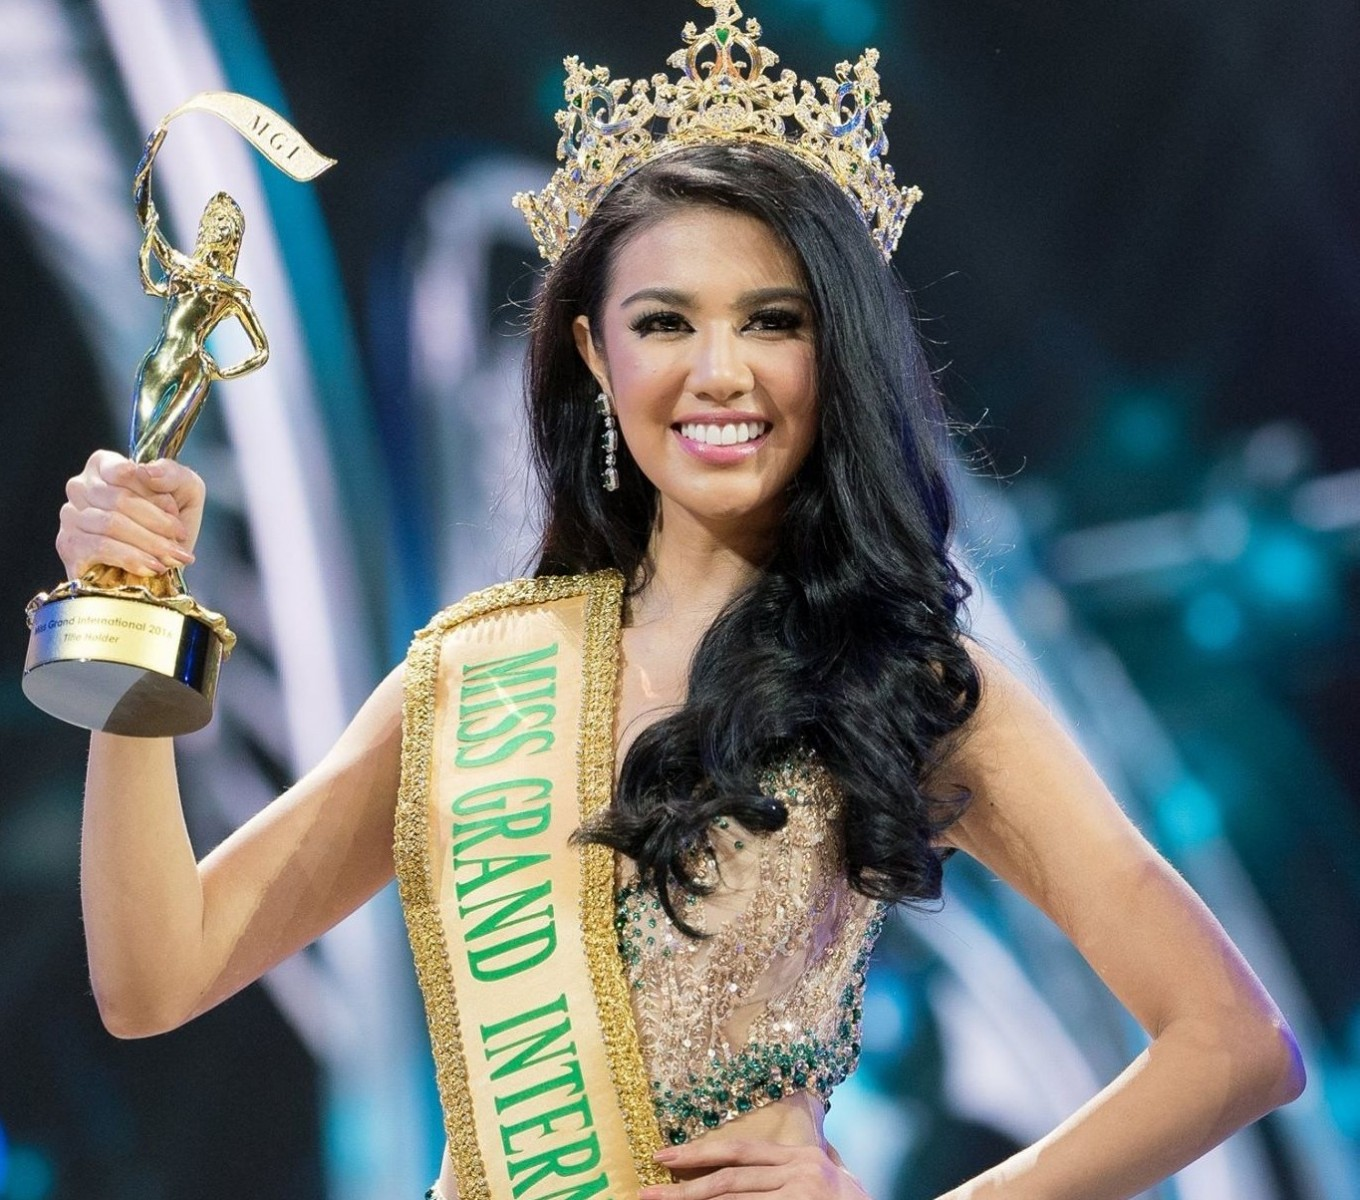 University prepares to welcome US pageant-winning student